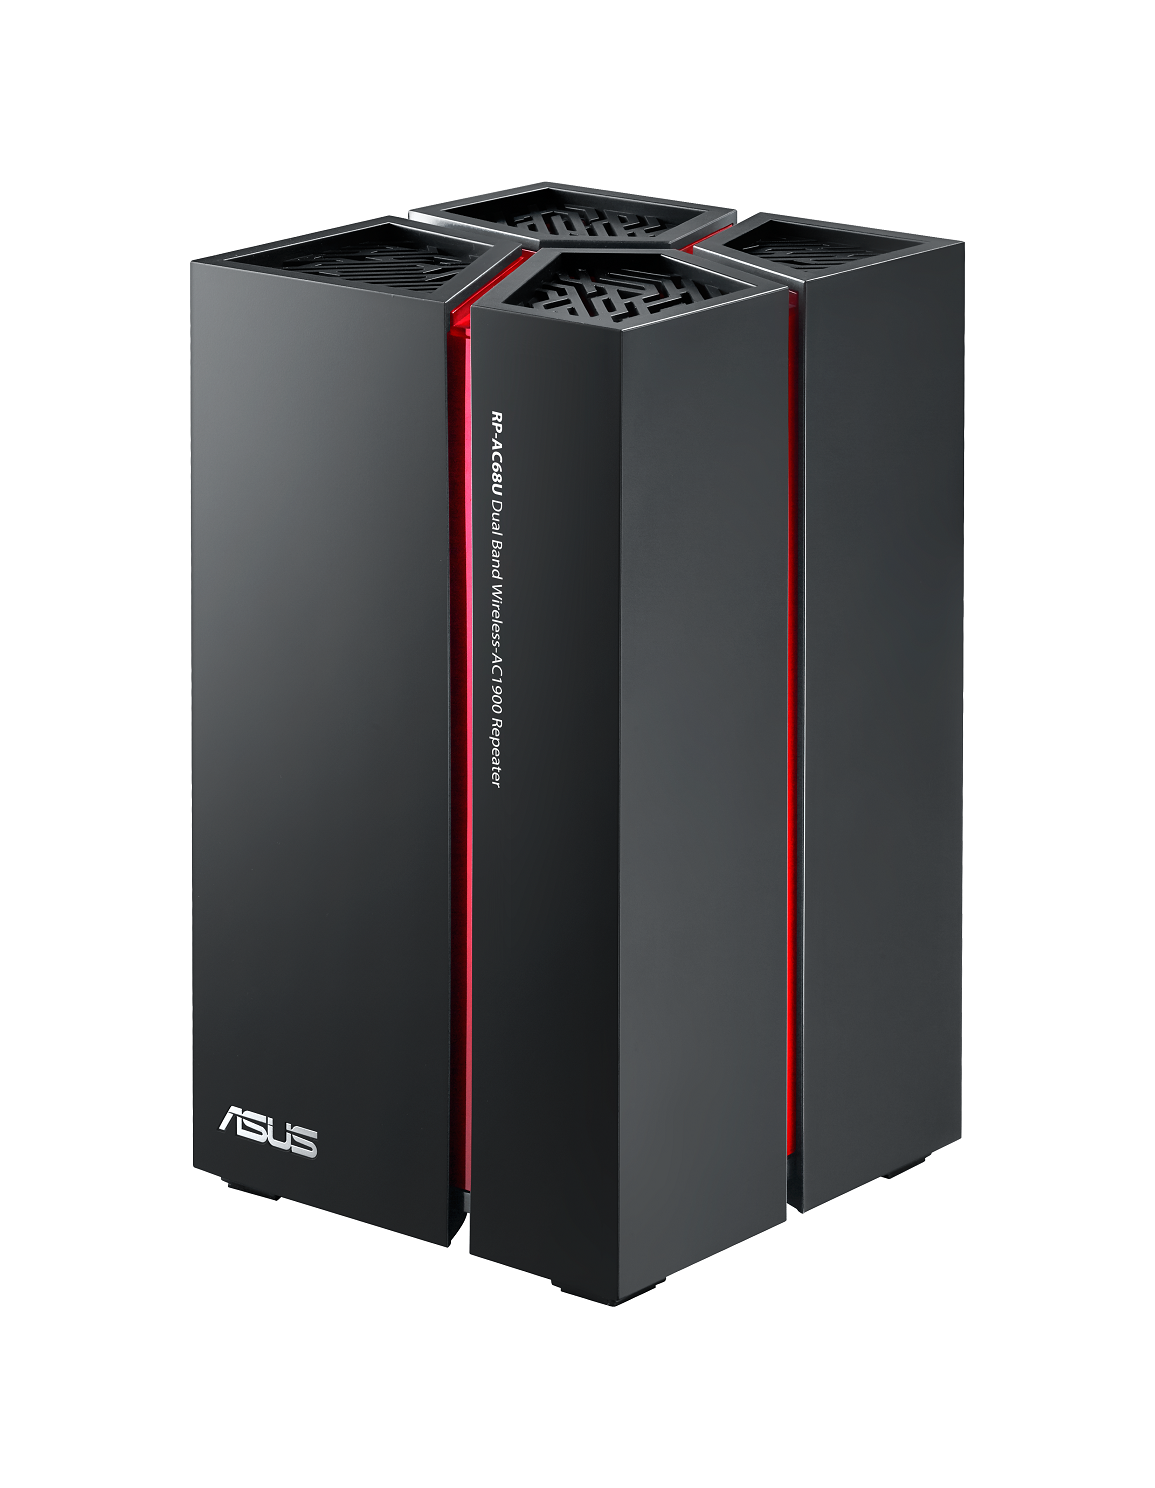 ASUS RP-AC68U dual-band wireless AC1900 repeater_side